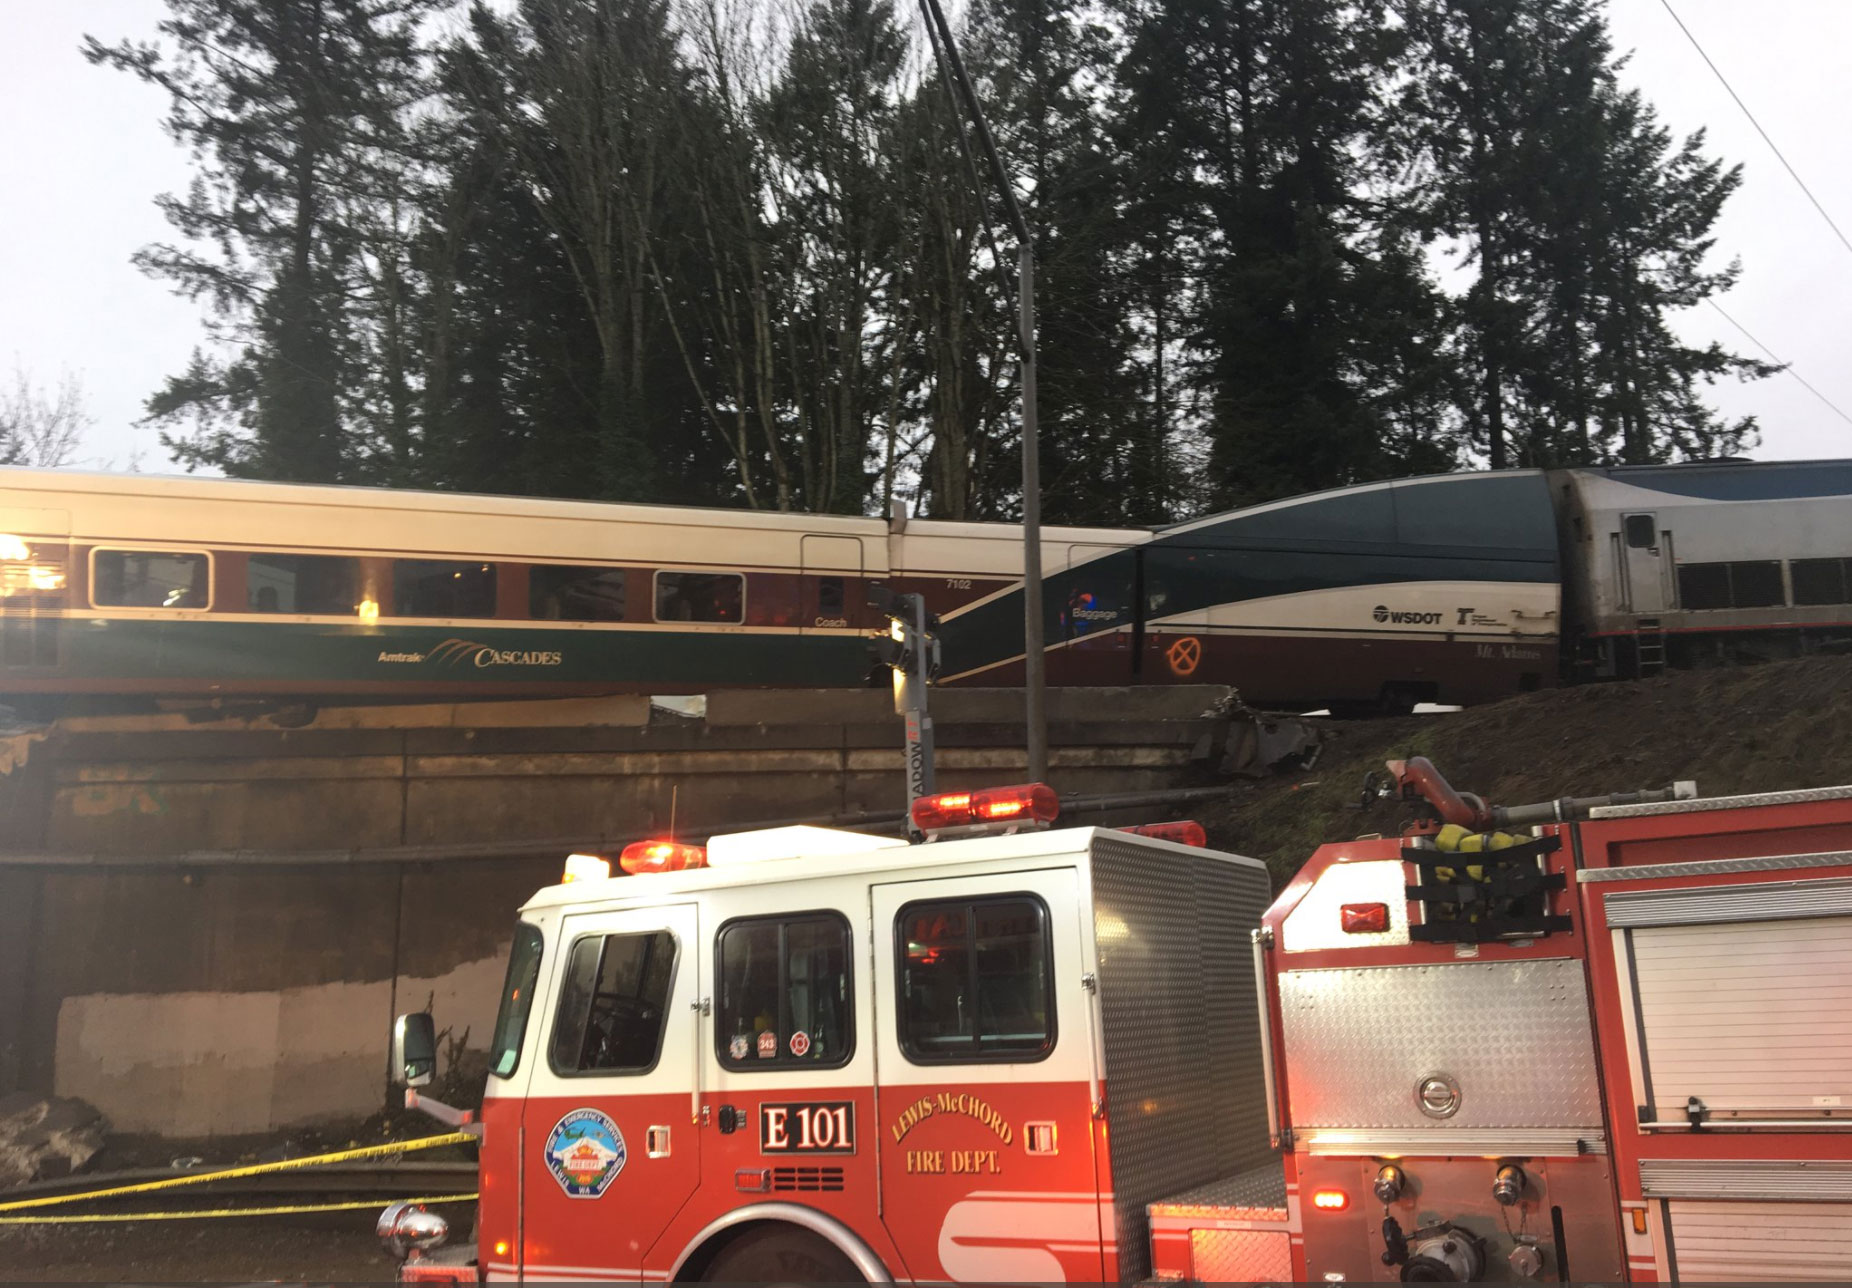 <div class='meta'><div class='origin-logo' data-origin='none'></div><span class='caption-text' data-credit='PierceSheriff/Twitter'>The Pierce Co Sheriff shared these photos from the scene on Monday.</span></div>